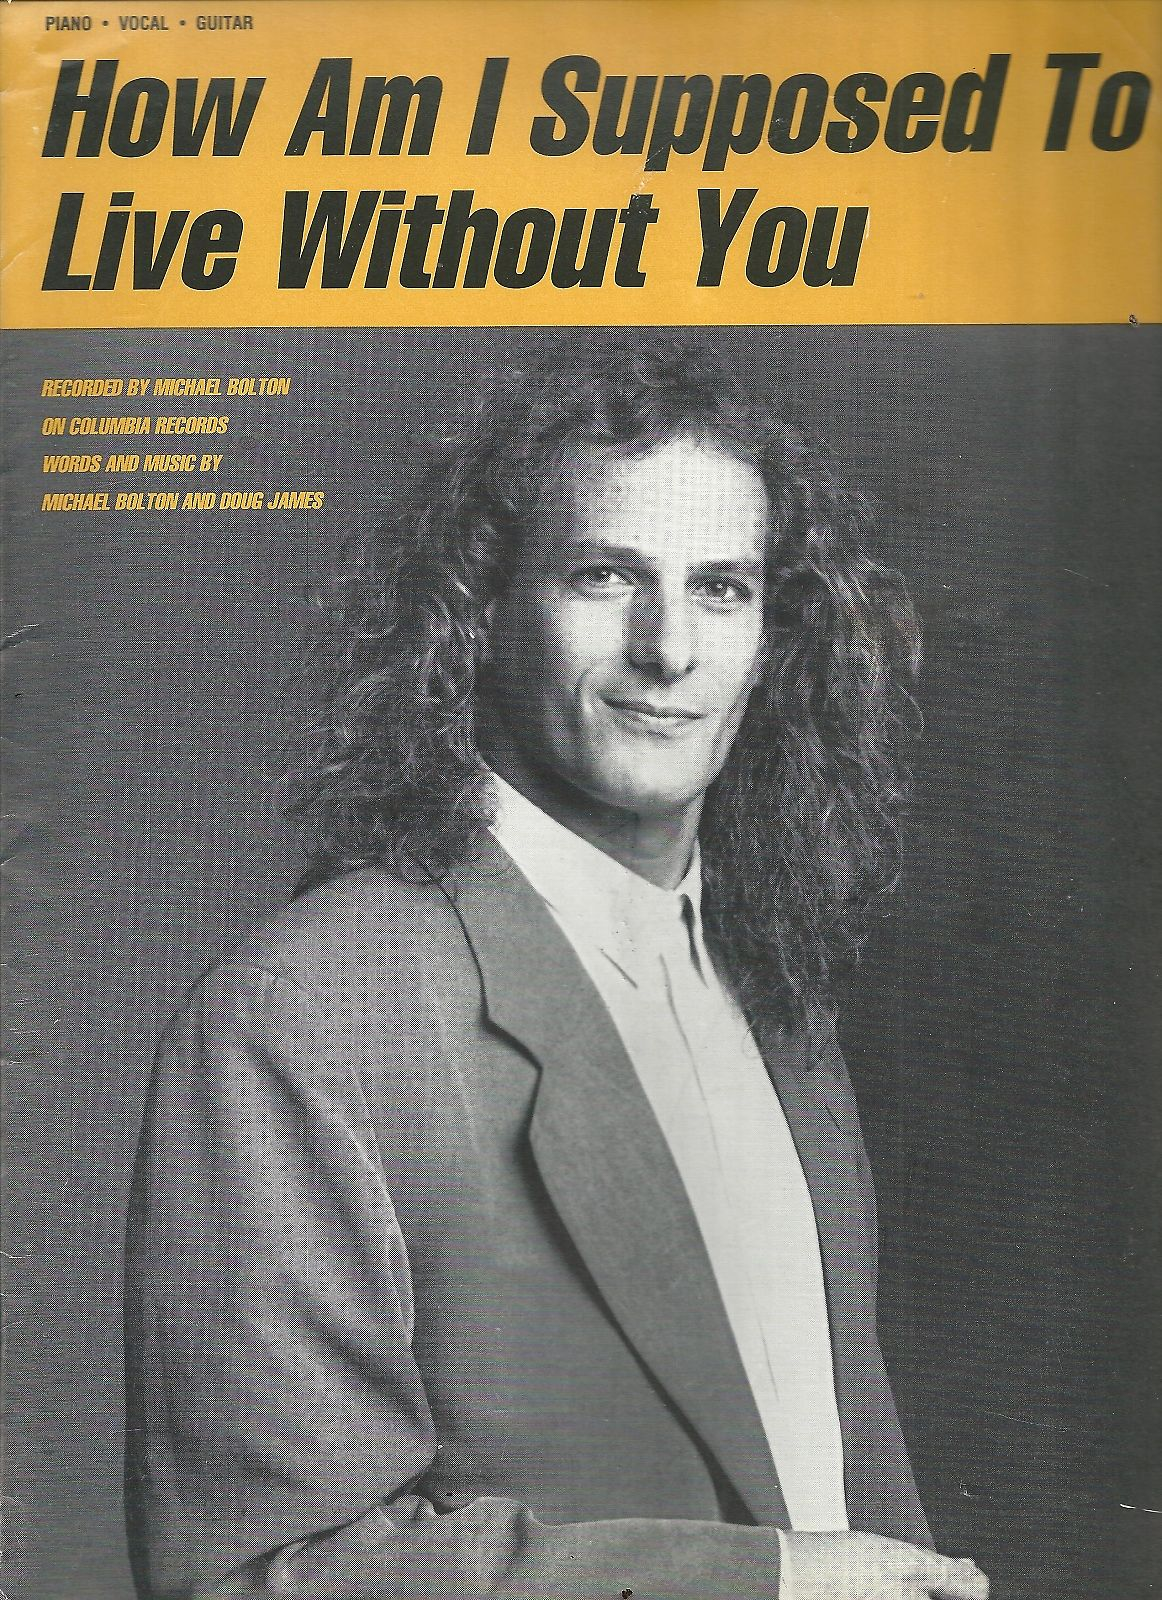 Michael Bolton-How Am I Supposed to Live Without You Sheet Music  (Piano-Vocal-Guitar), 1983